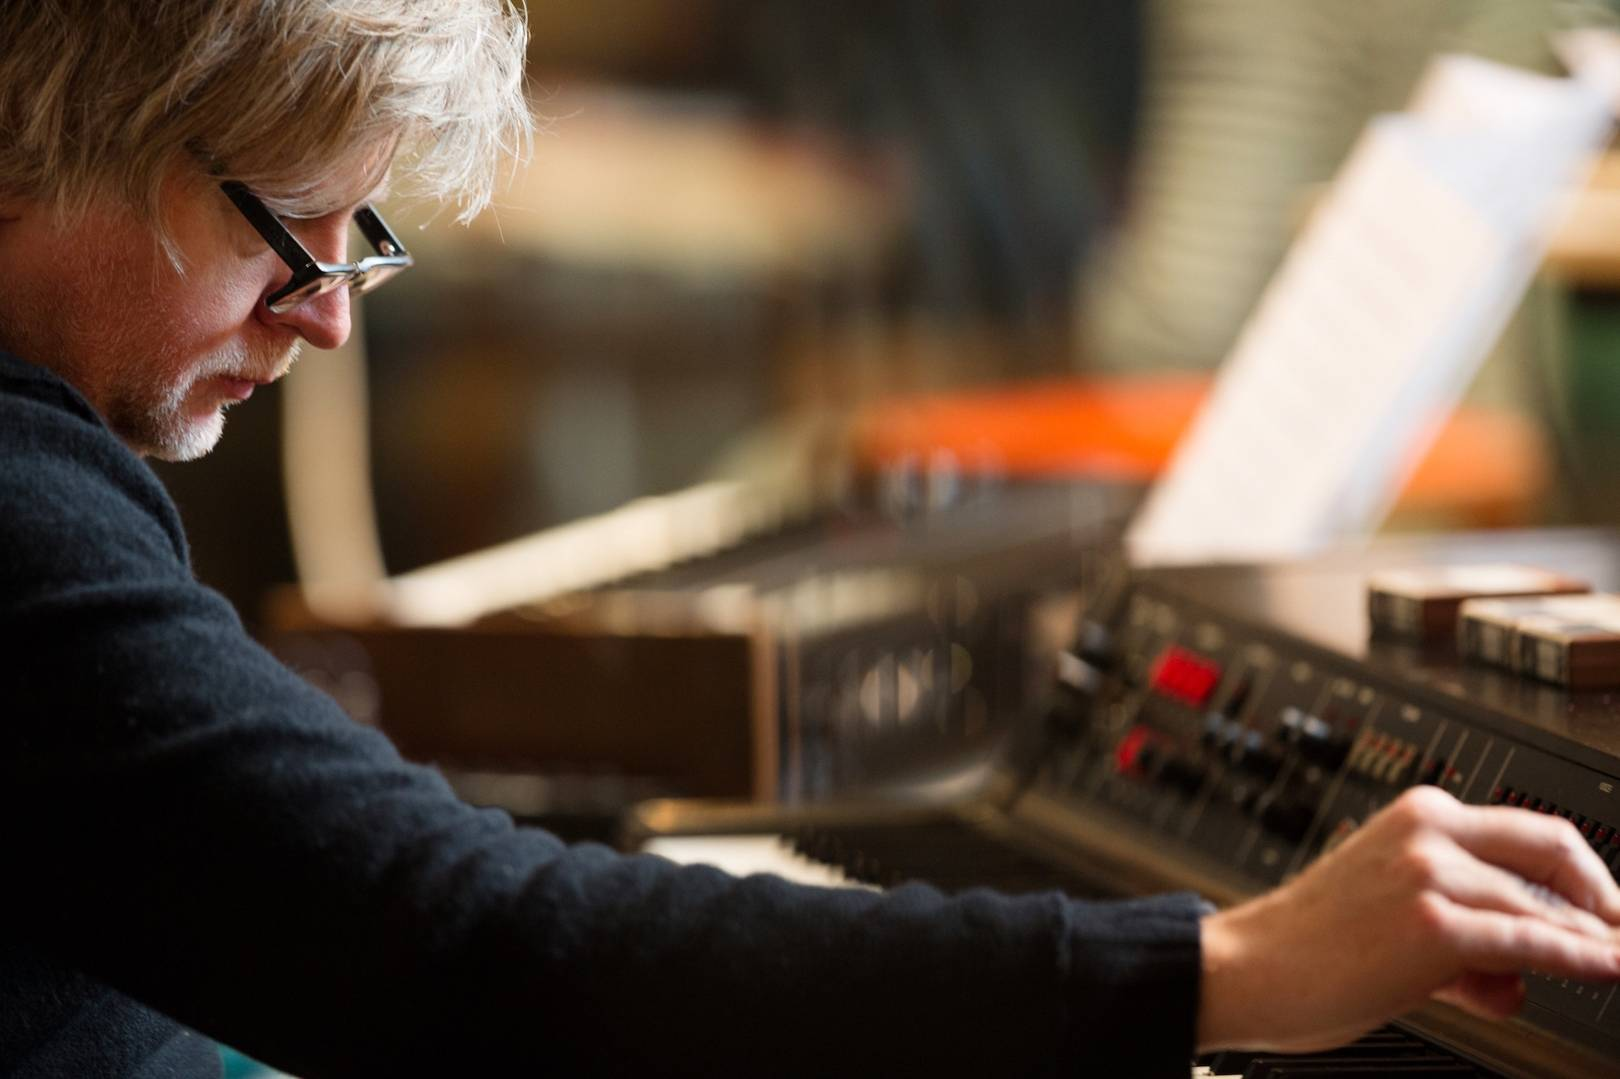 Can you find the voice of God in a Moog performance of Bach? | WIRED UK